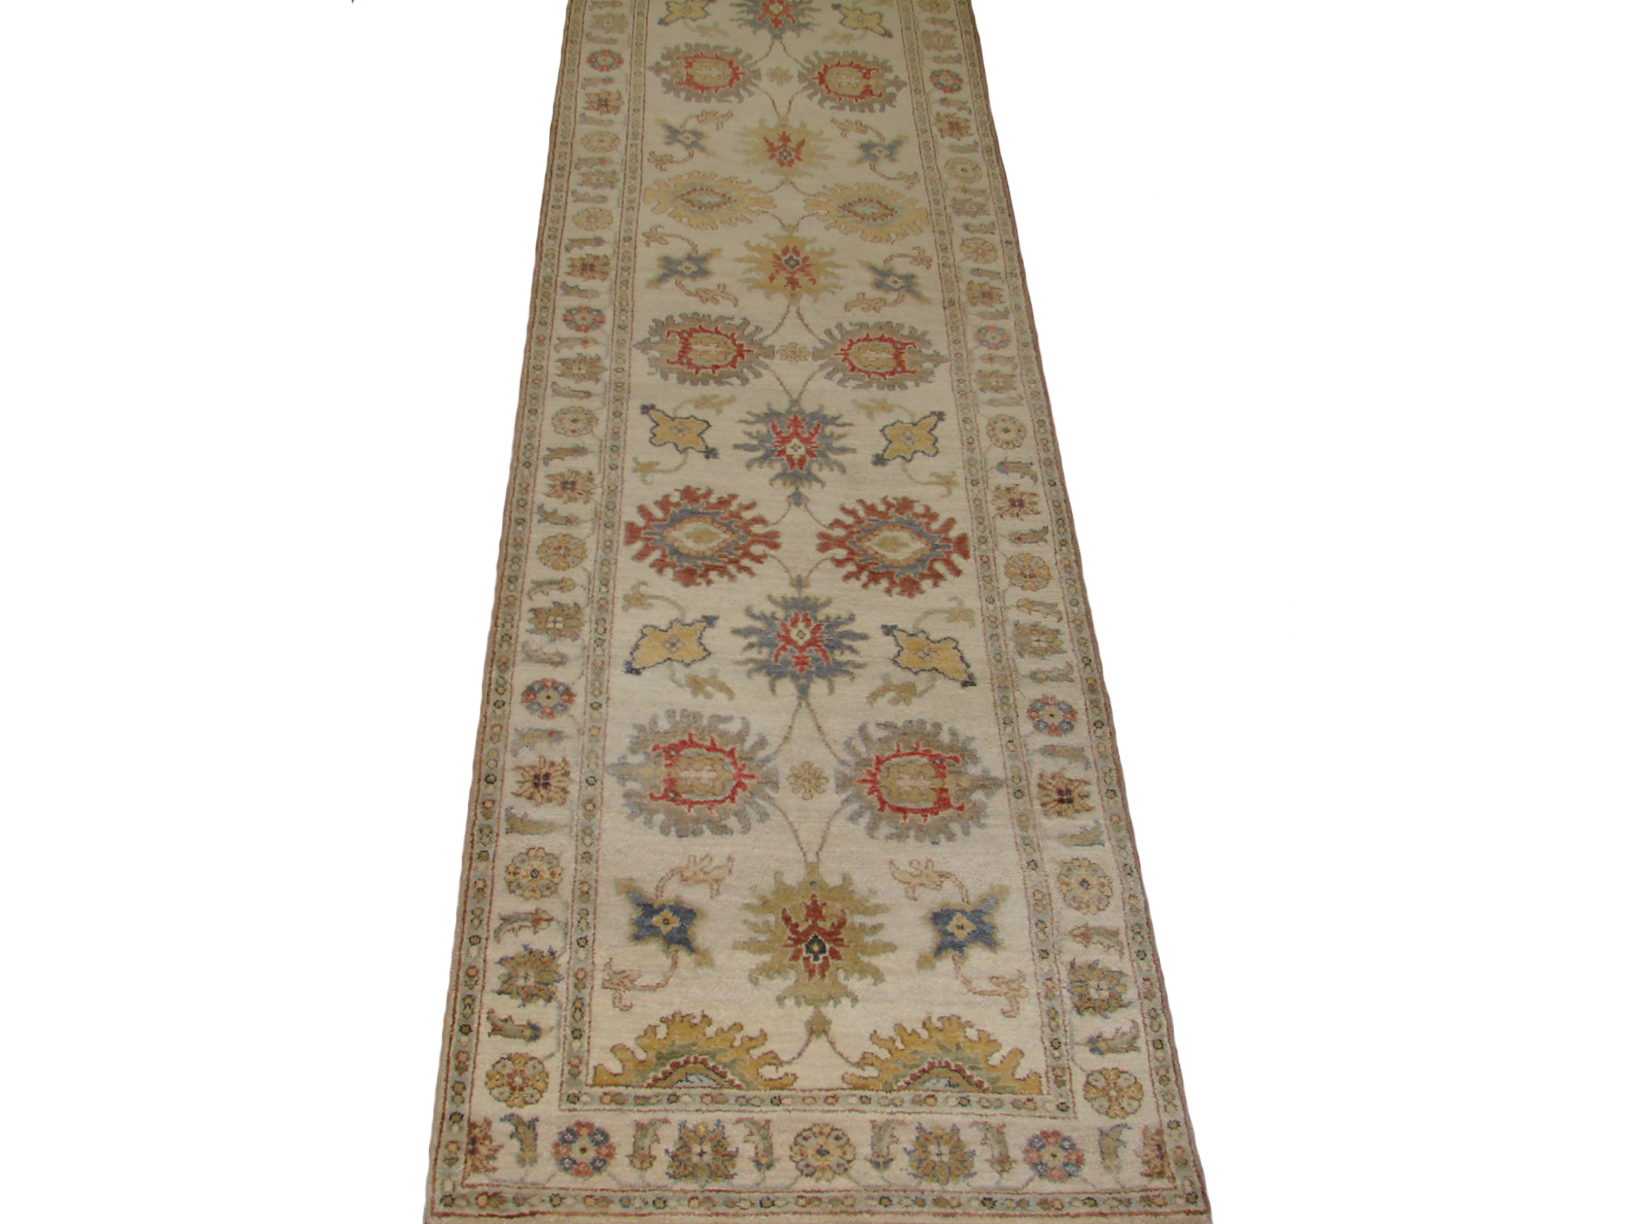 13 & Longer Runner Traditional Hand Knotted Wool Area Rug - MR20503